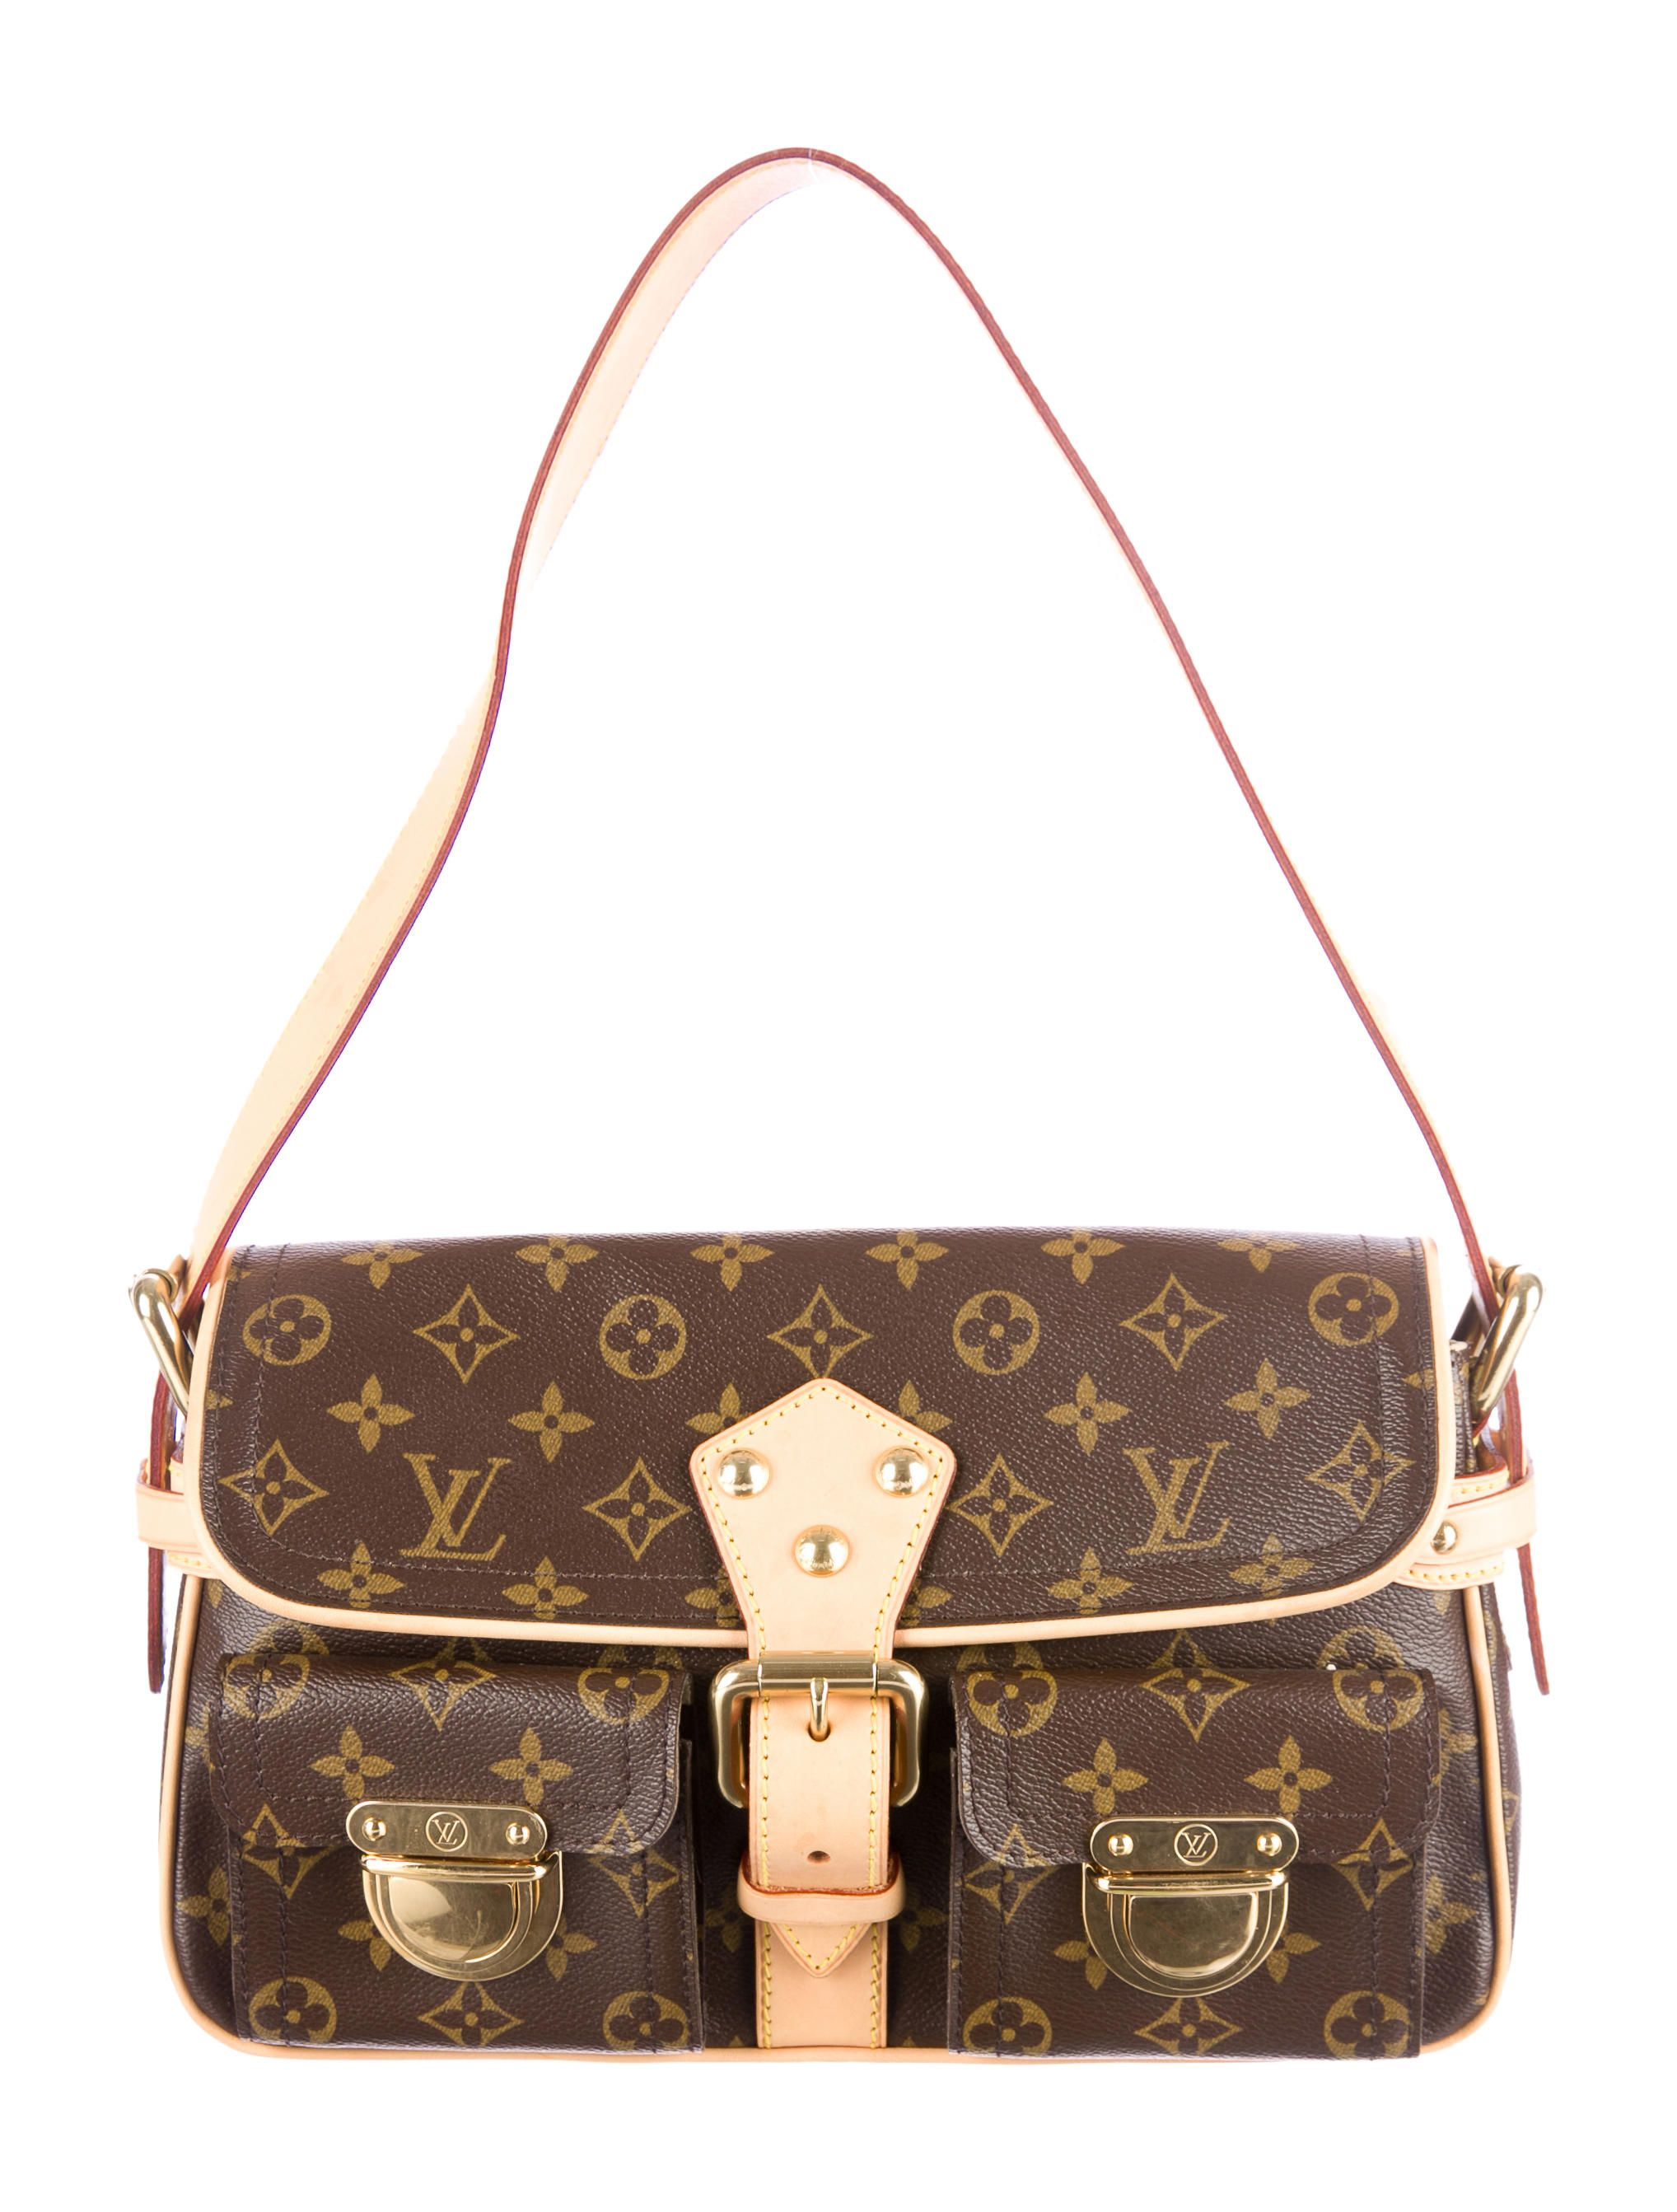 385b267bf Brown and tan monogram coated canvas Louis Vuitton Hudson PM shoulder bag  with vachetta leather trim